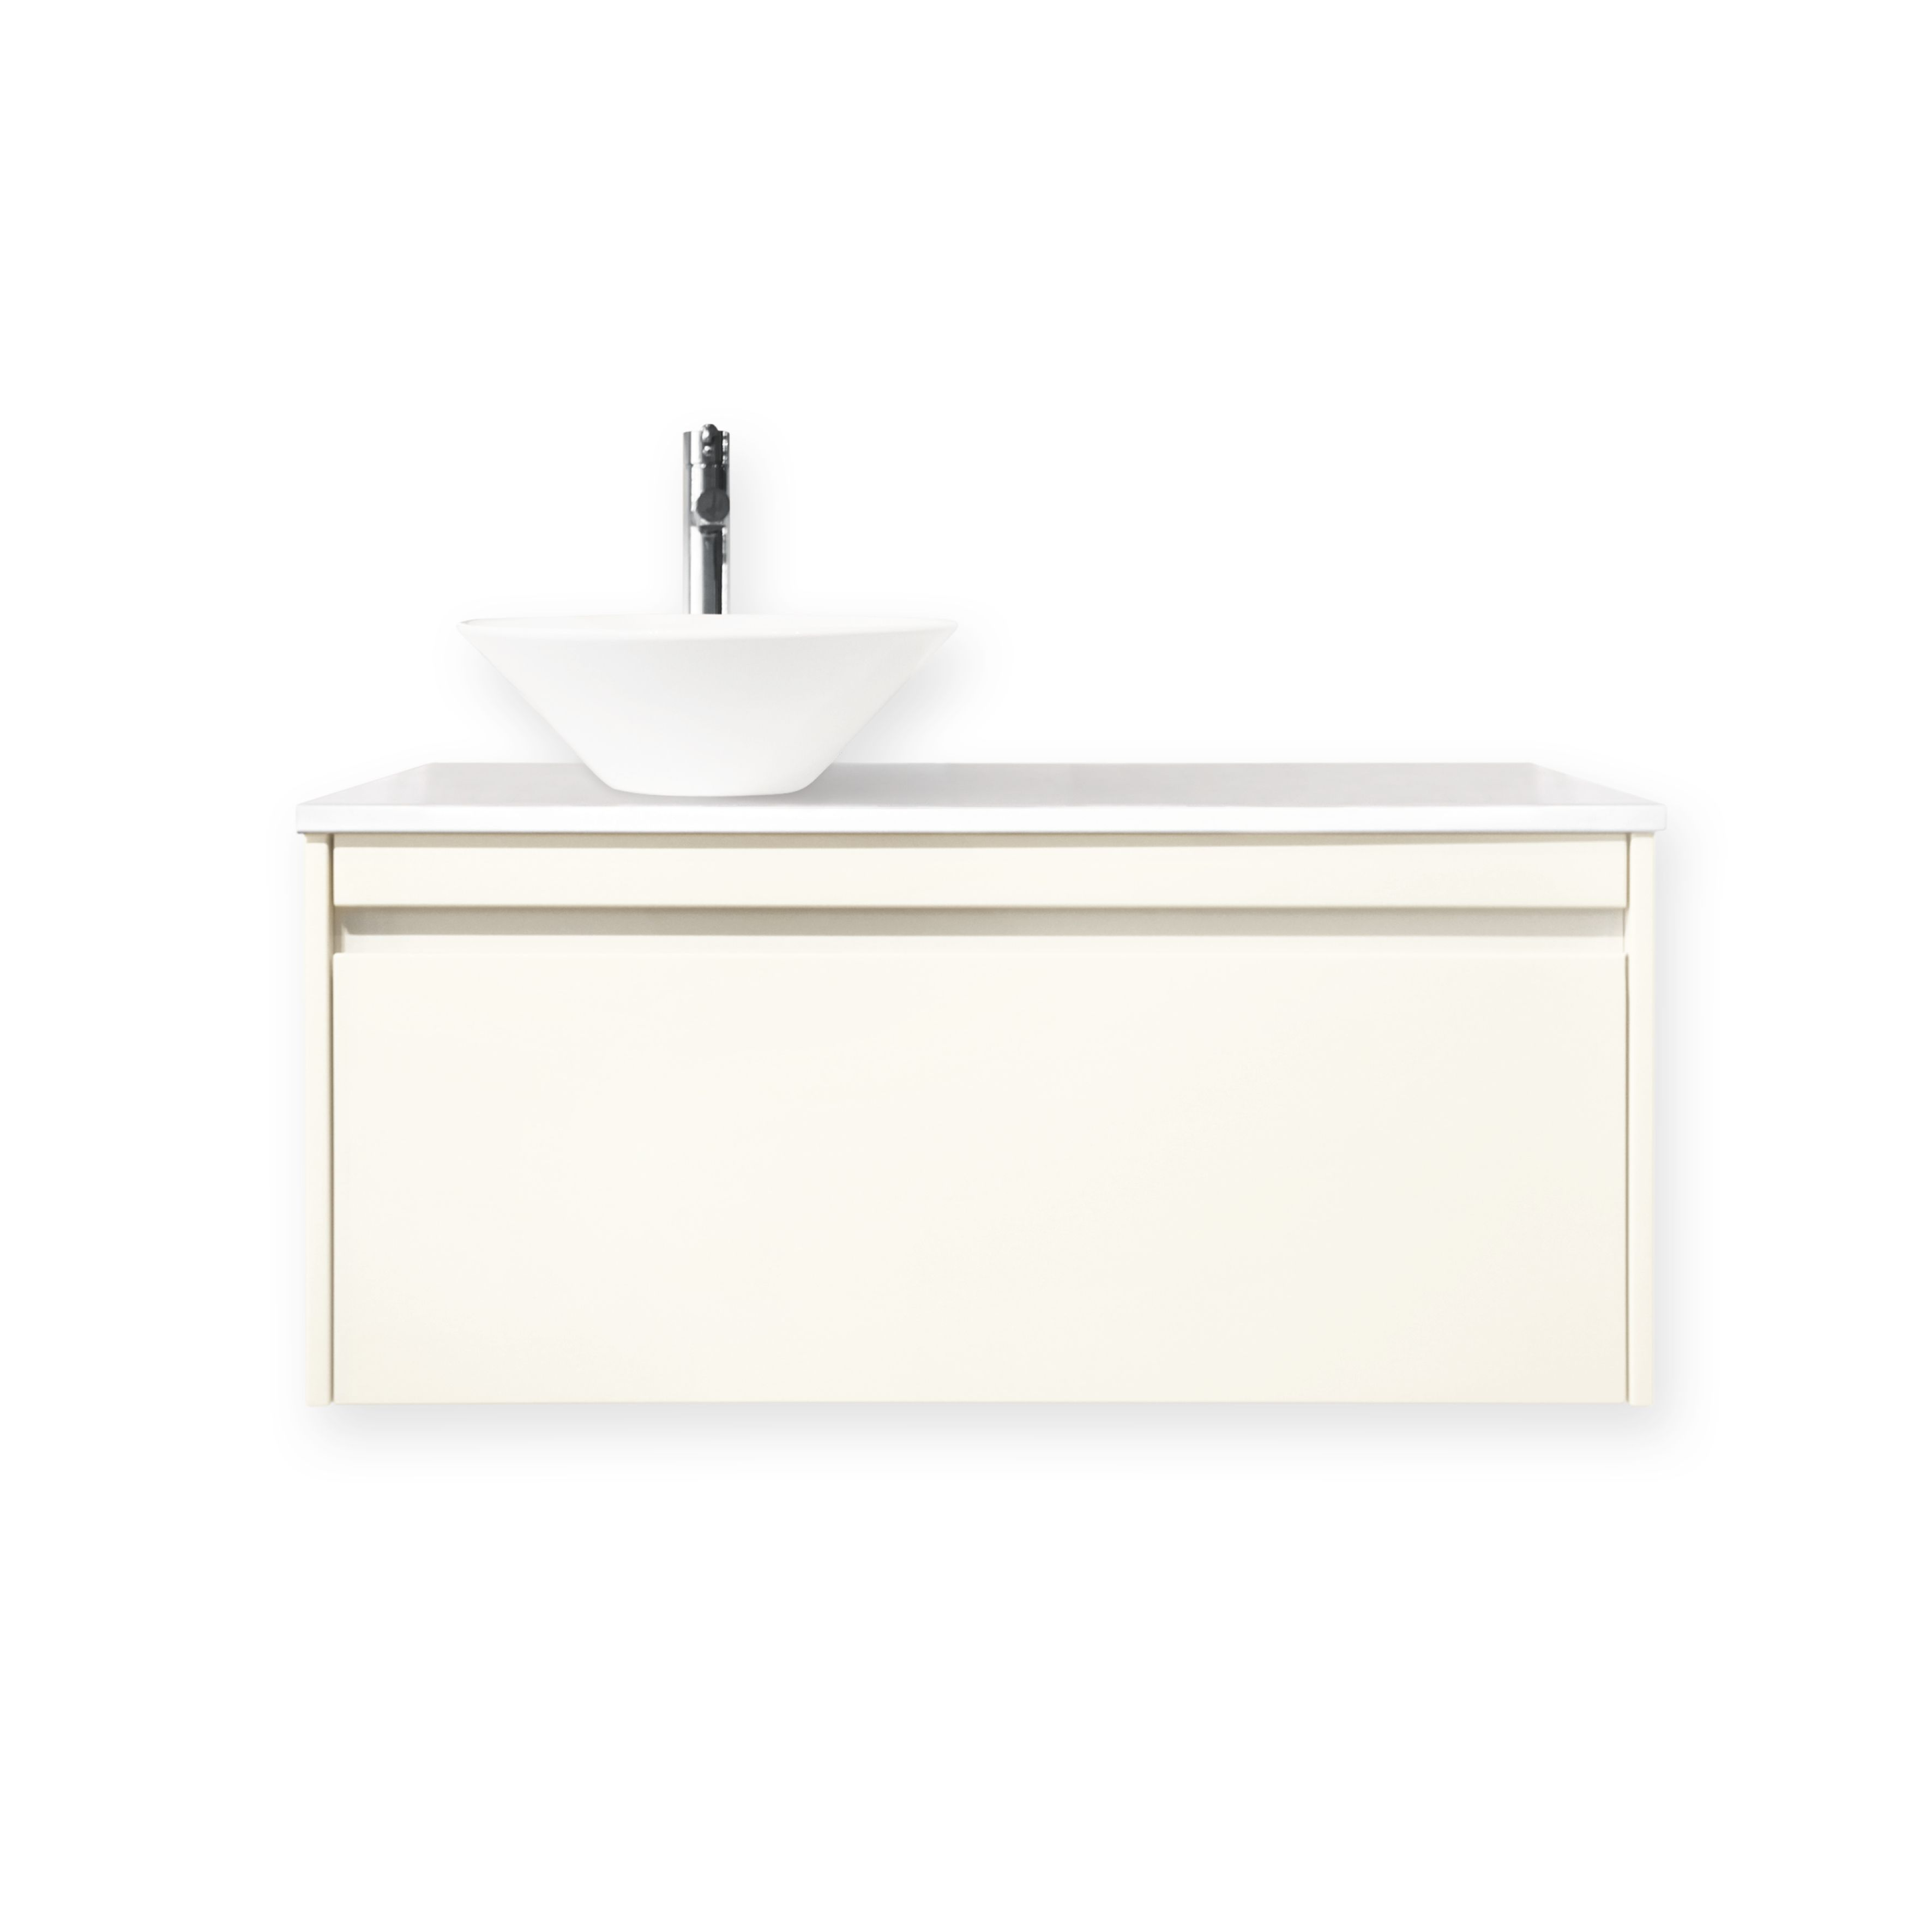 Bunnings Bathrooms Vanity Vanity Wall Hung Quay 900 Whstone Ant Wht Bell Bunnings